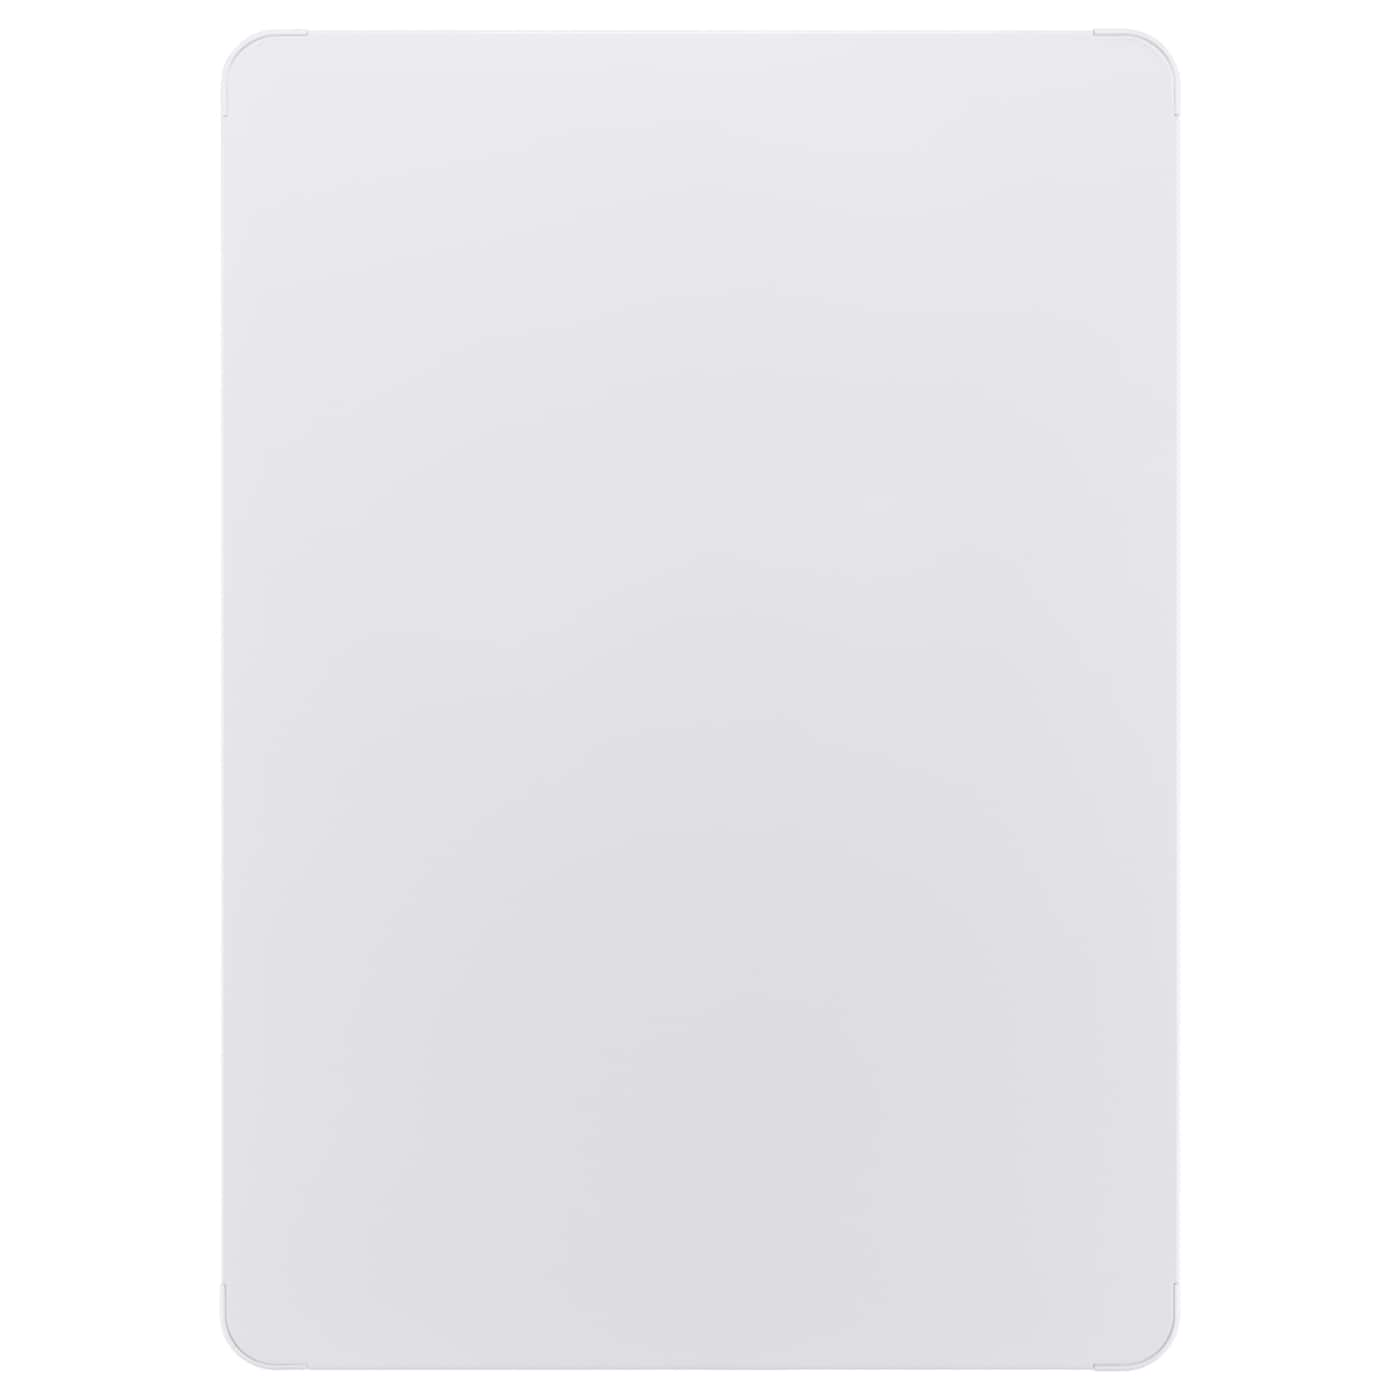 vemund whiteboard magnetic board white 140x90 cm ikea. Black Bedroom Furniture Sets. Home Design Ideas